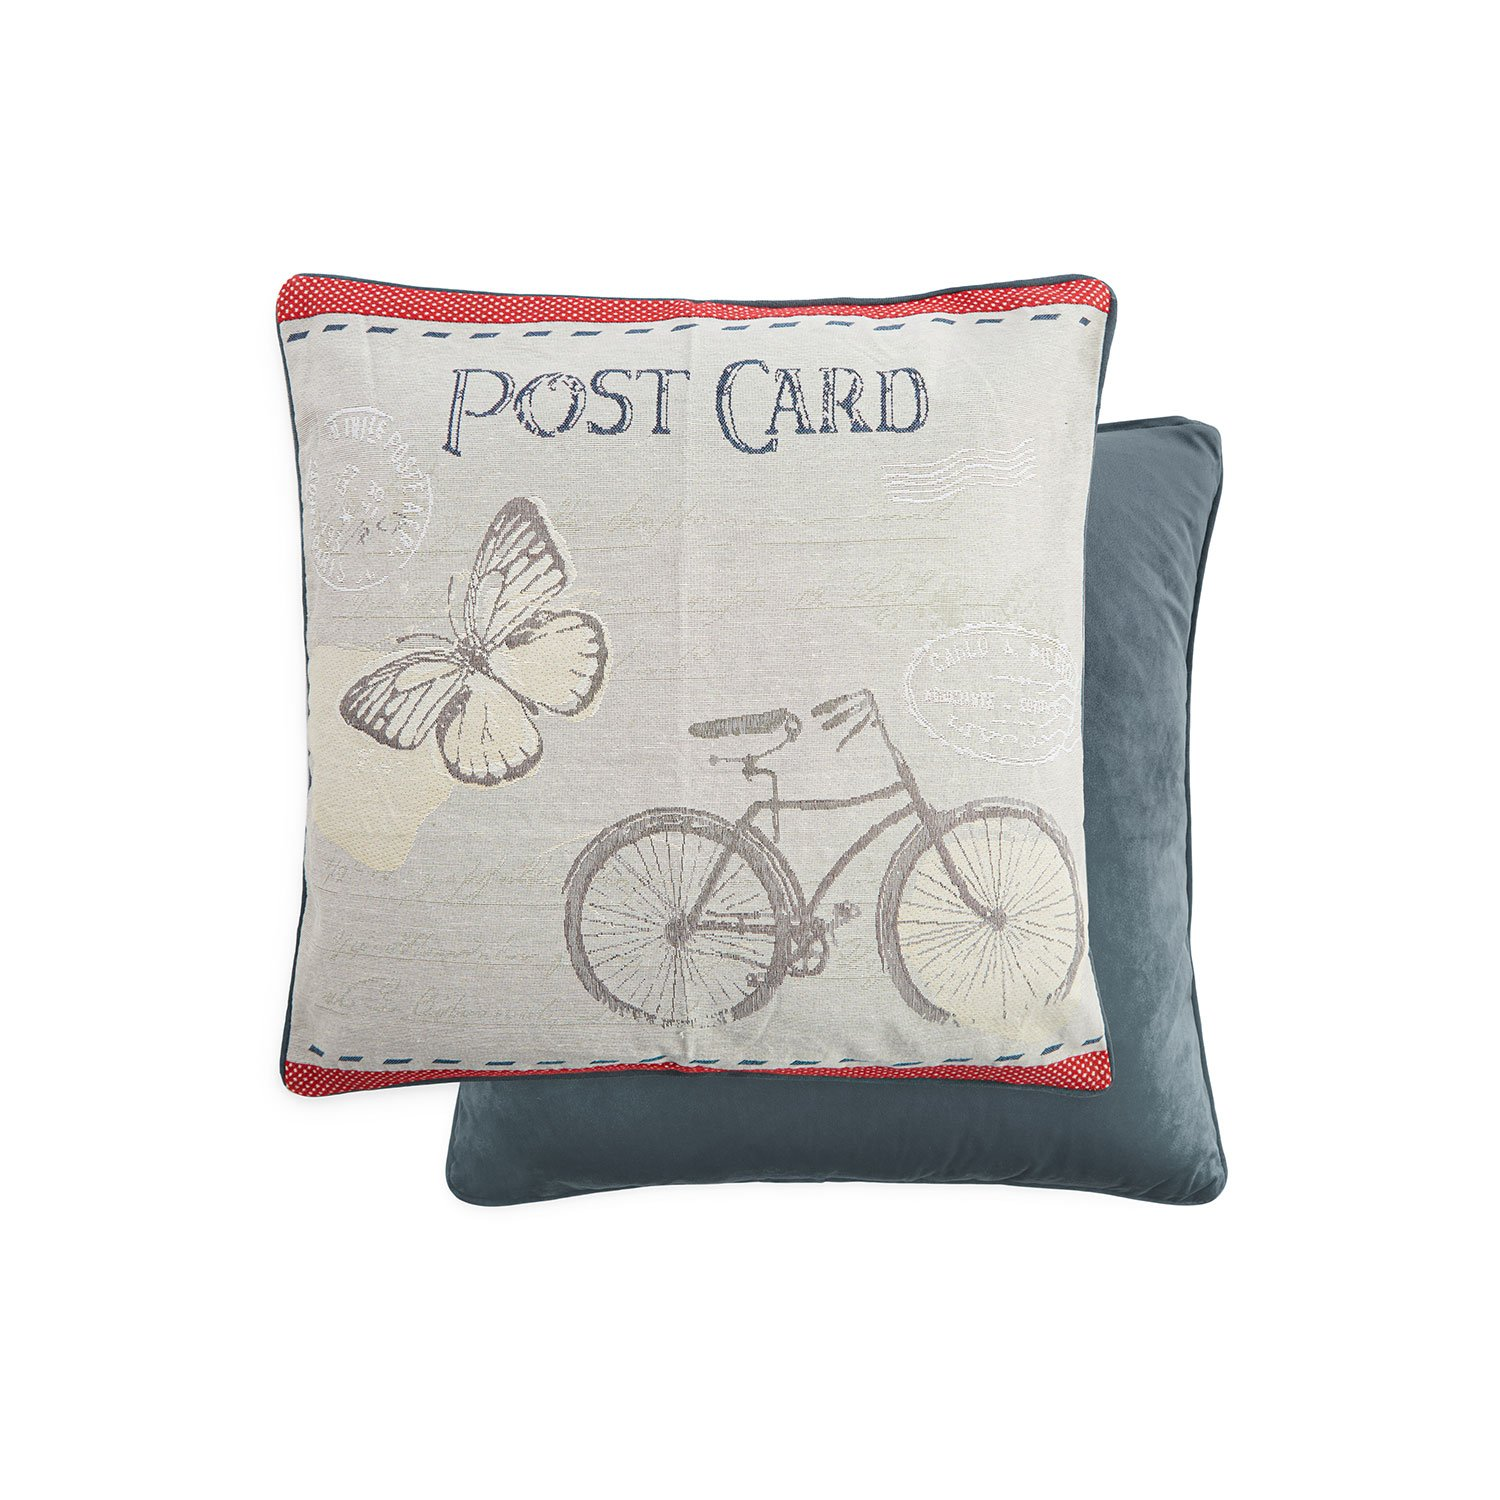 Vintage Postcard Cushion Cover 2 Pack 45x45cm